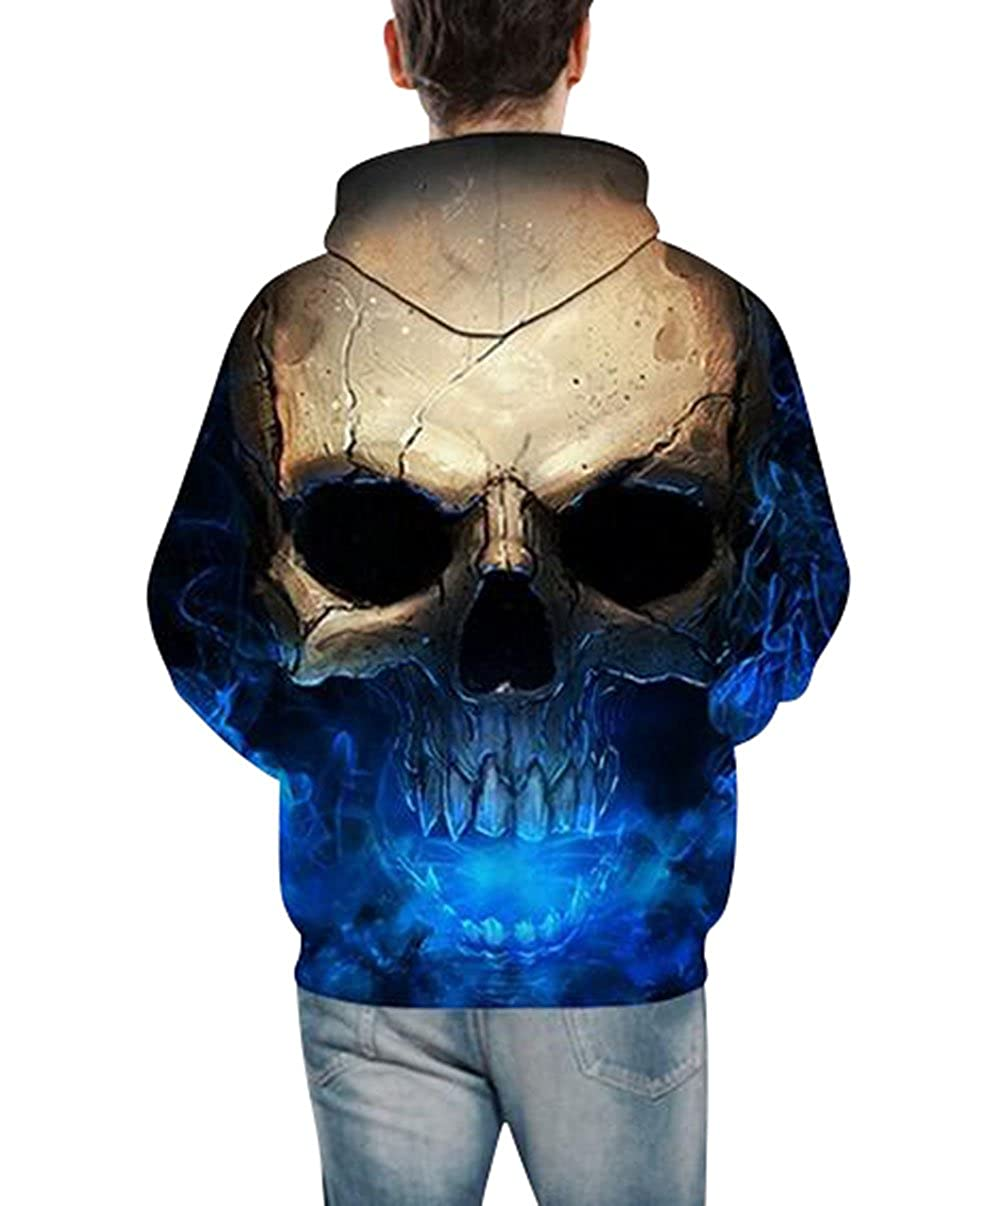 Lyamazing Unisex Hoodie Skull 3D Printed Pullover Long Sleeve Sweatshirt at Amazon Mens Clothing store: